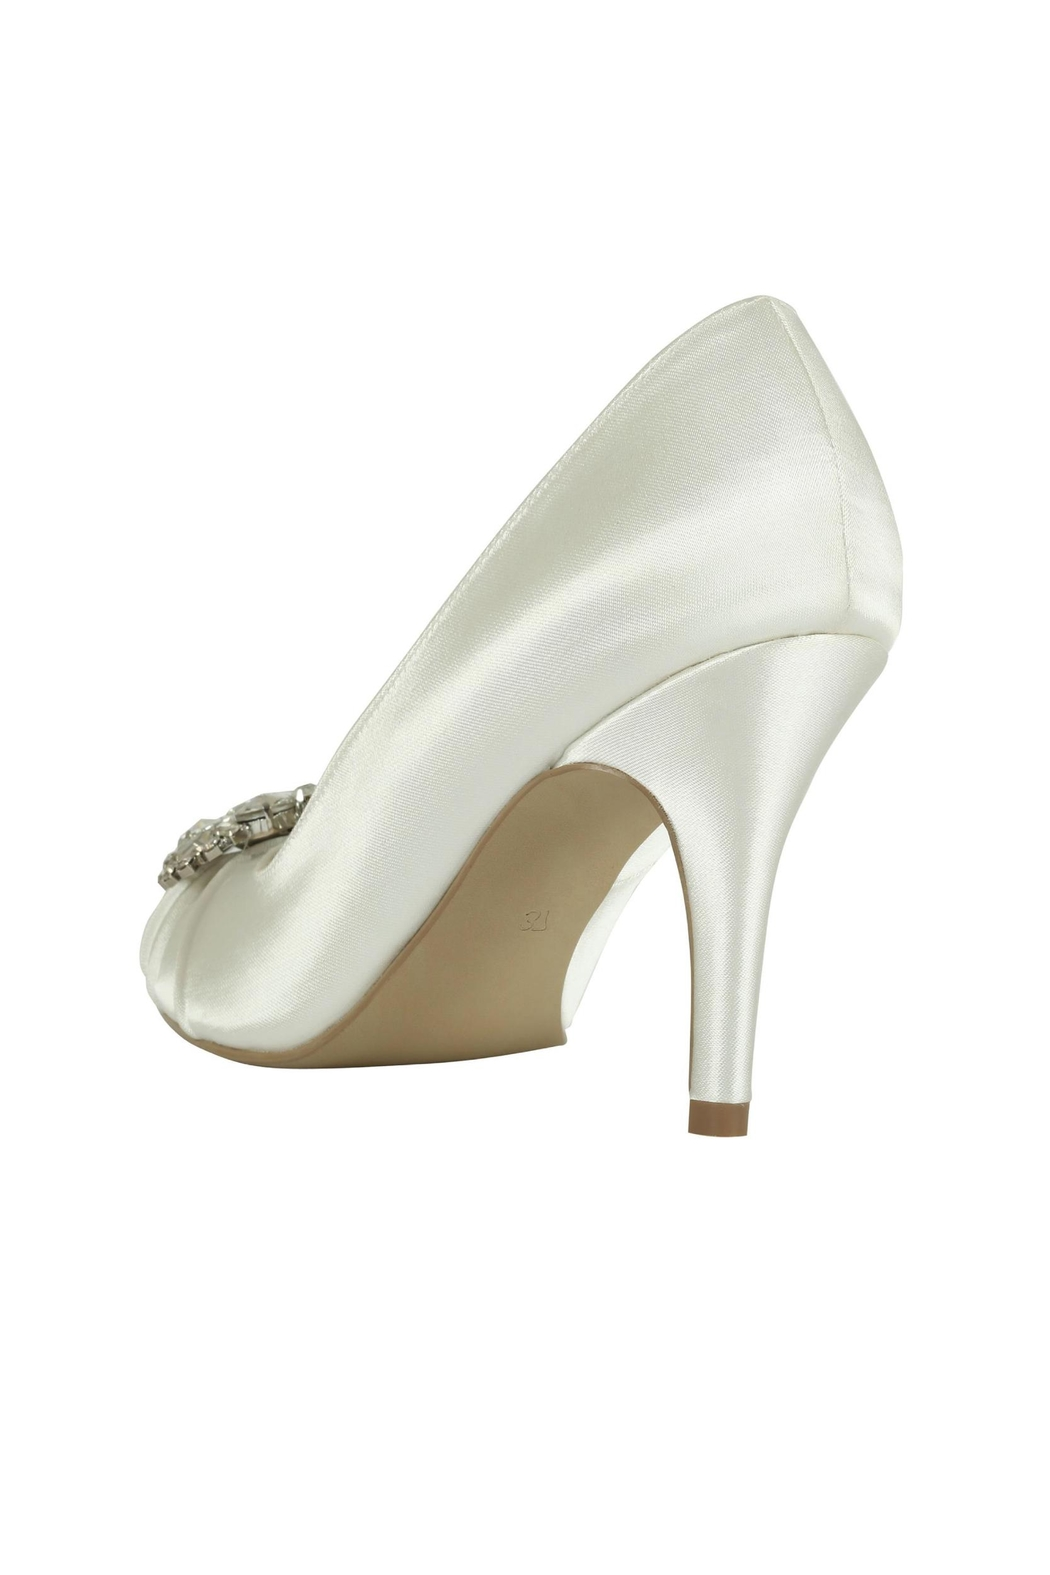 pink paradox London Tender Ivory Satin Shoes - Side Cropped Image